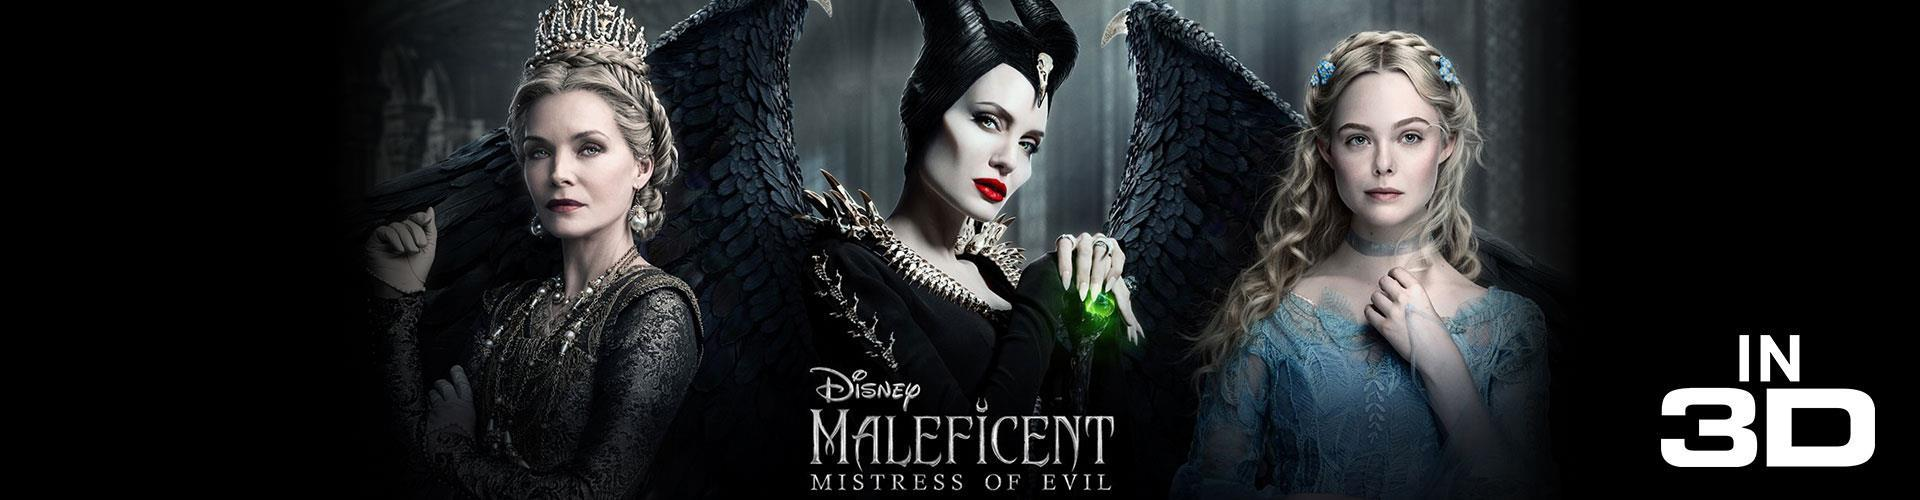 Book Ticket For Maleficent Mistress Of The Evil English